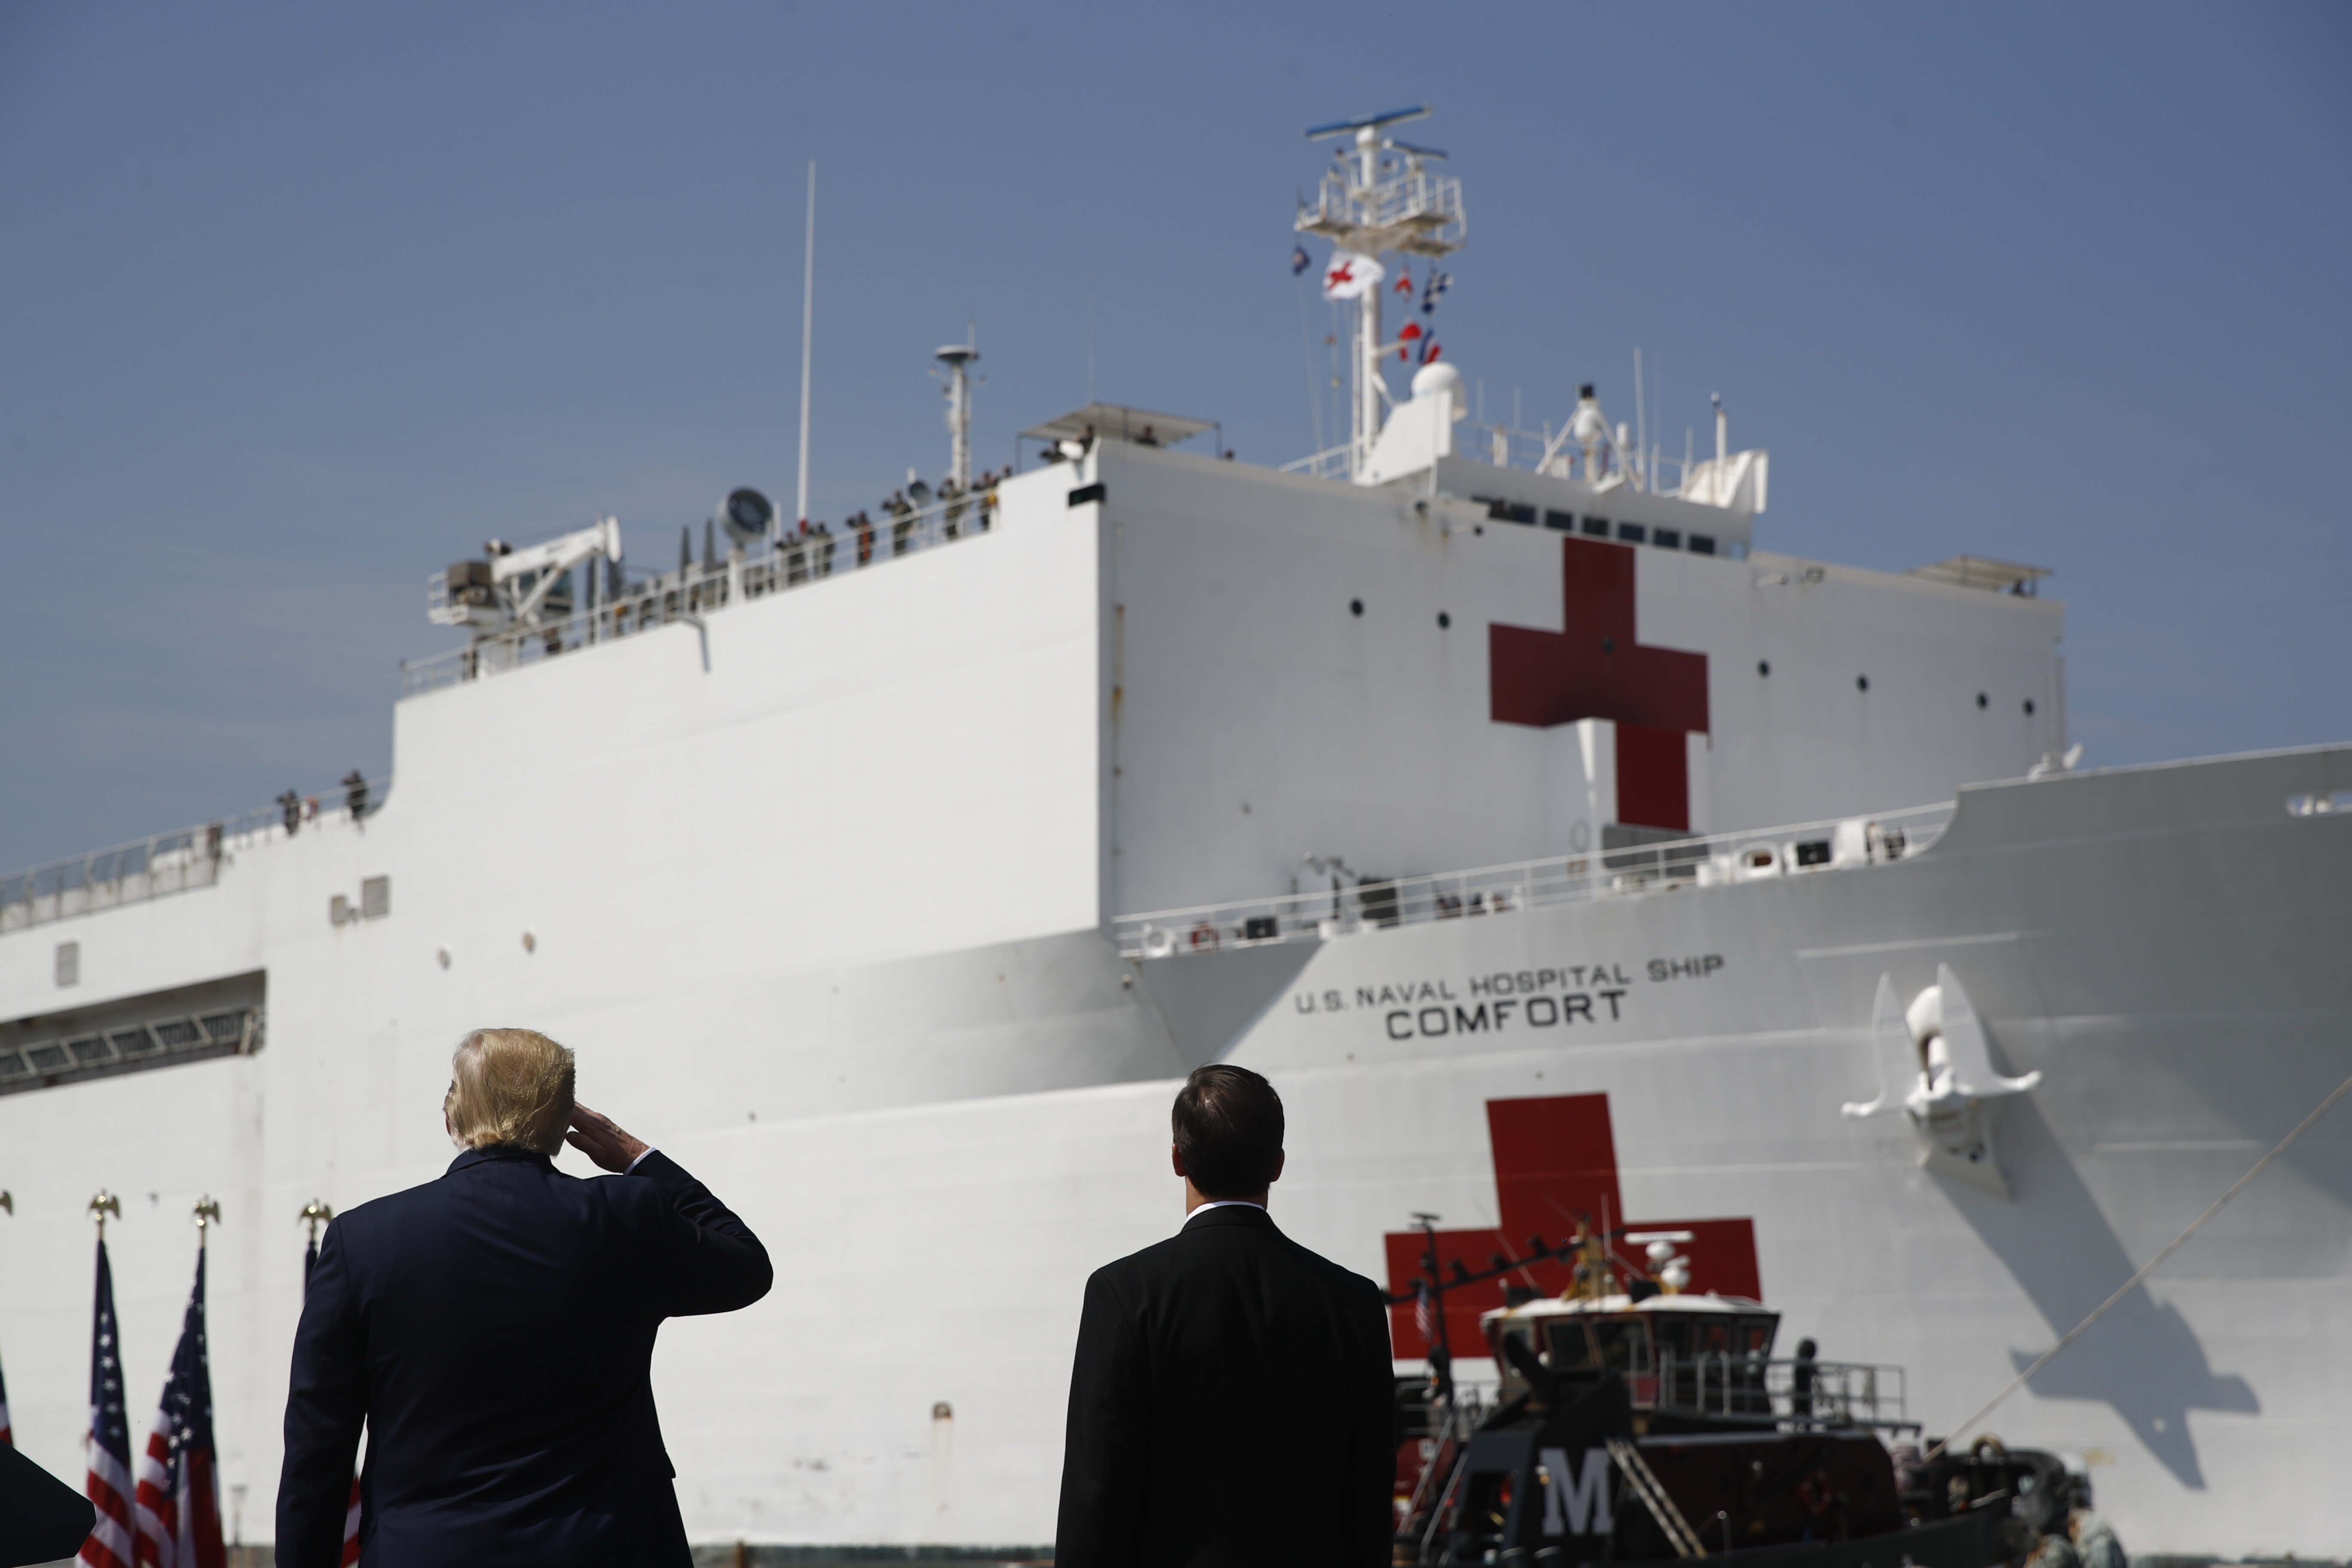 President Trump salutes as the U.S. Navy hospital ship USNS Comfort pulls away from the pier at Naval Station Norfolk in Norfolk, Virginia, on Saturday.